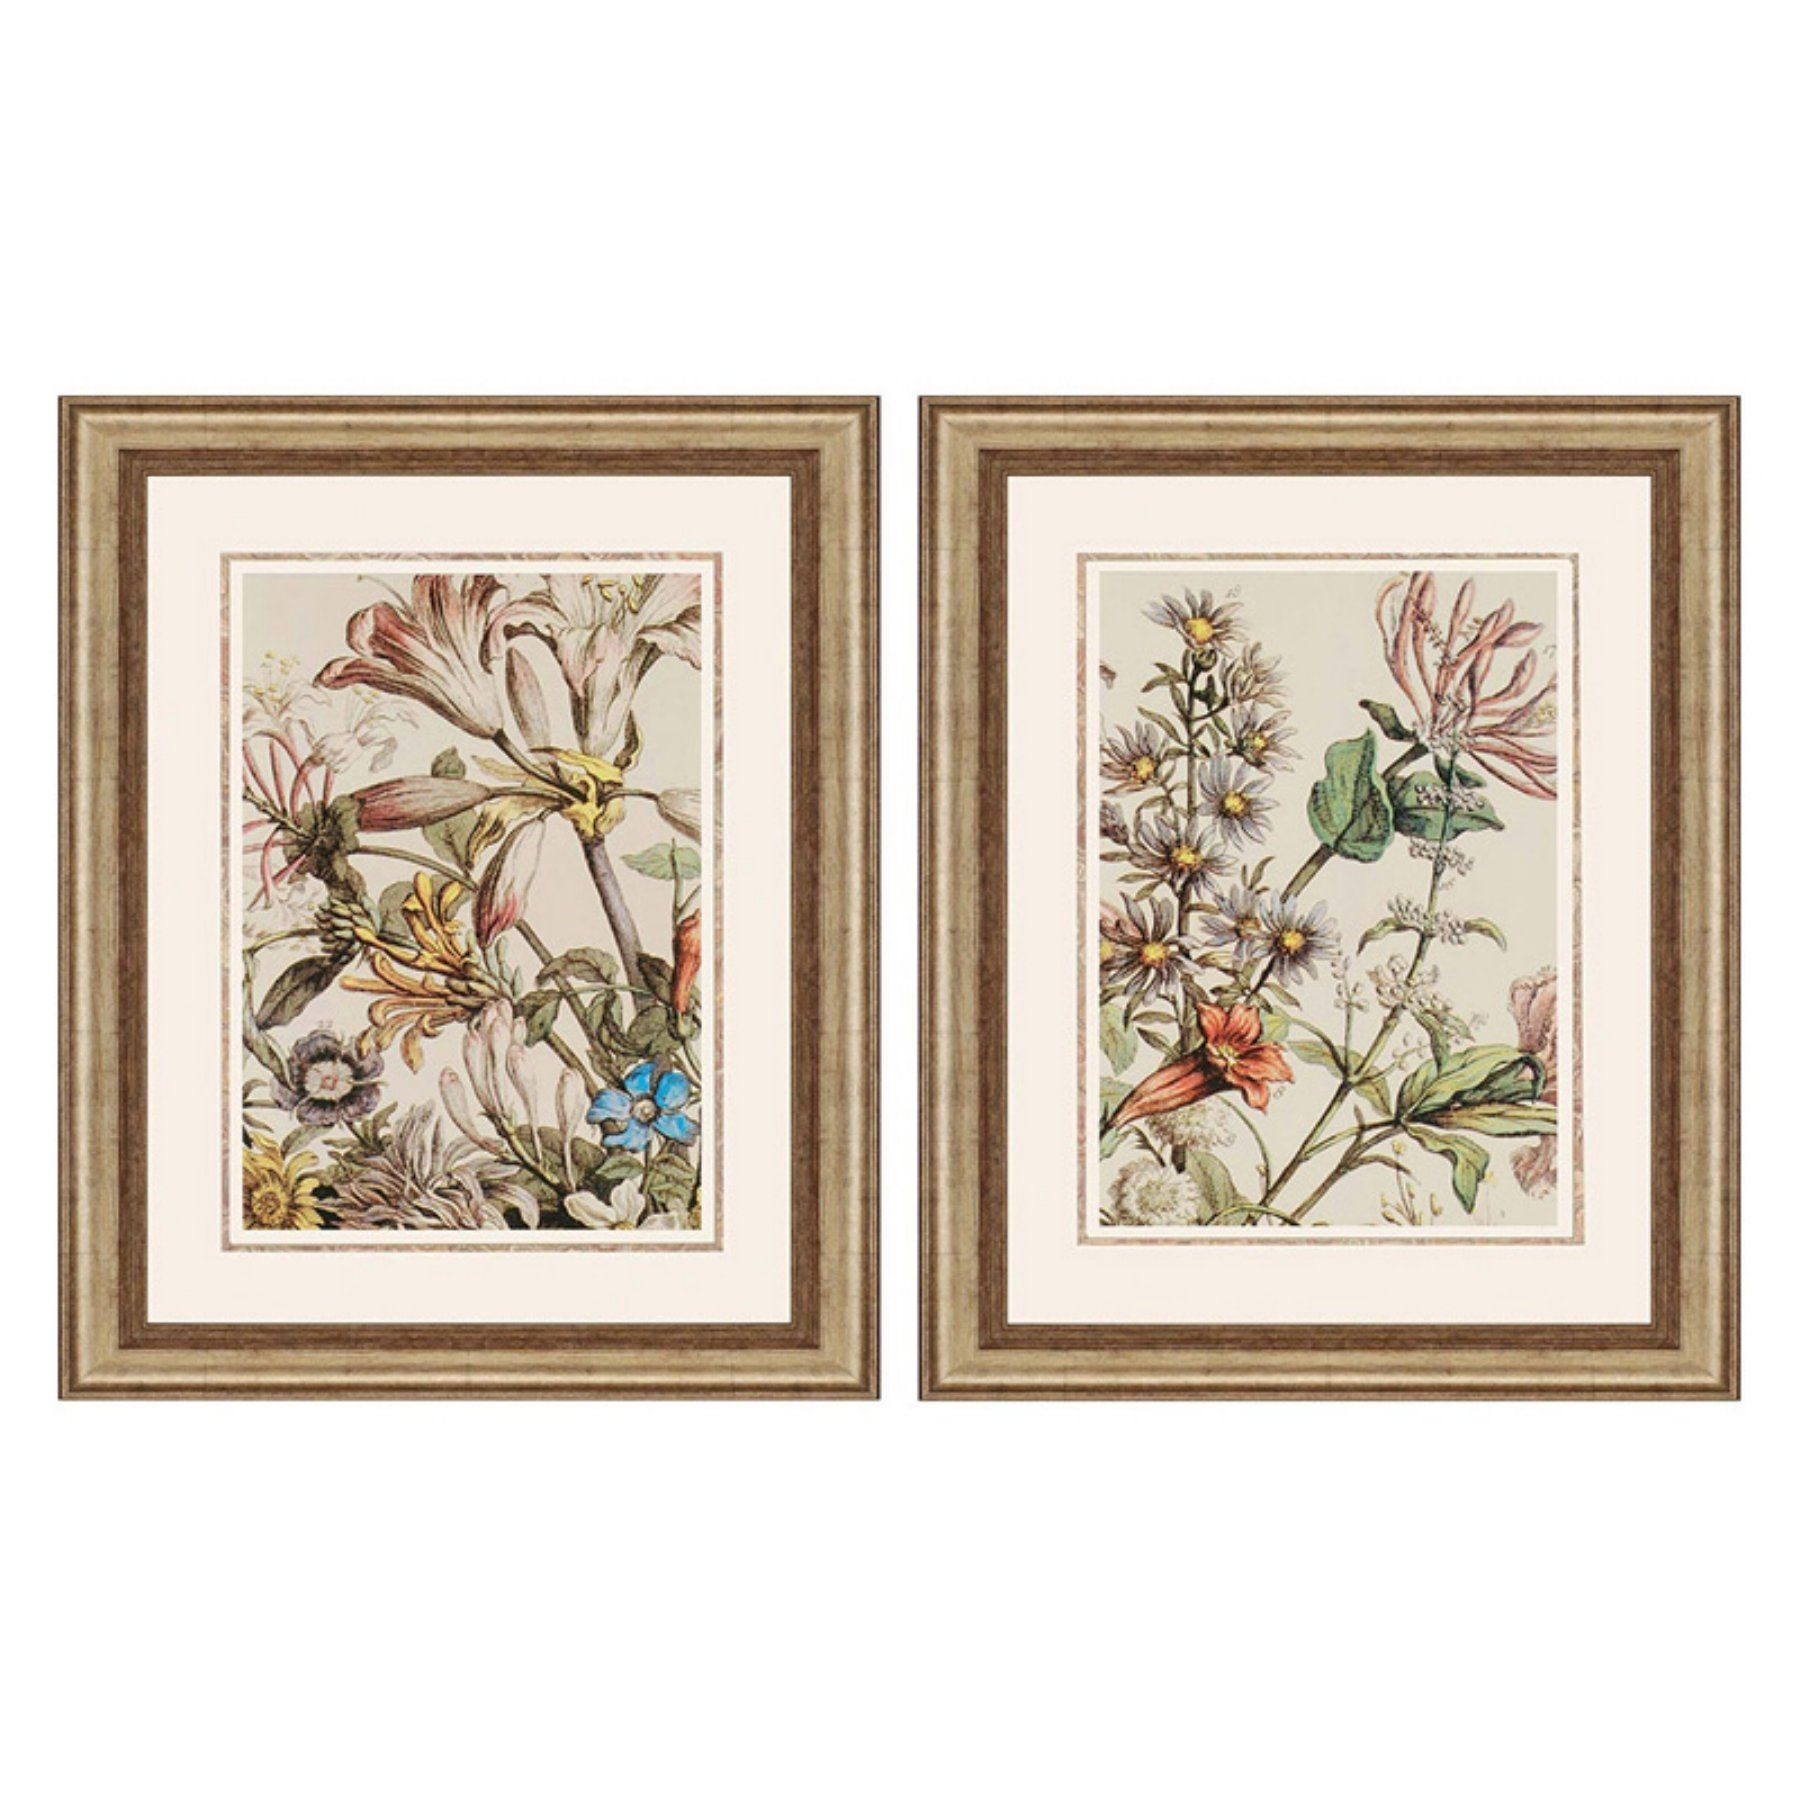 Paragon Decor October Detail Framed Wall Art - Set Of 2 - 7654 for Most Recent Set Of 2 Framed Wall Art